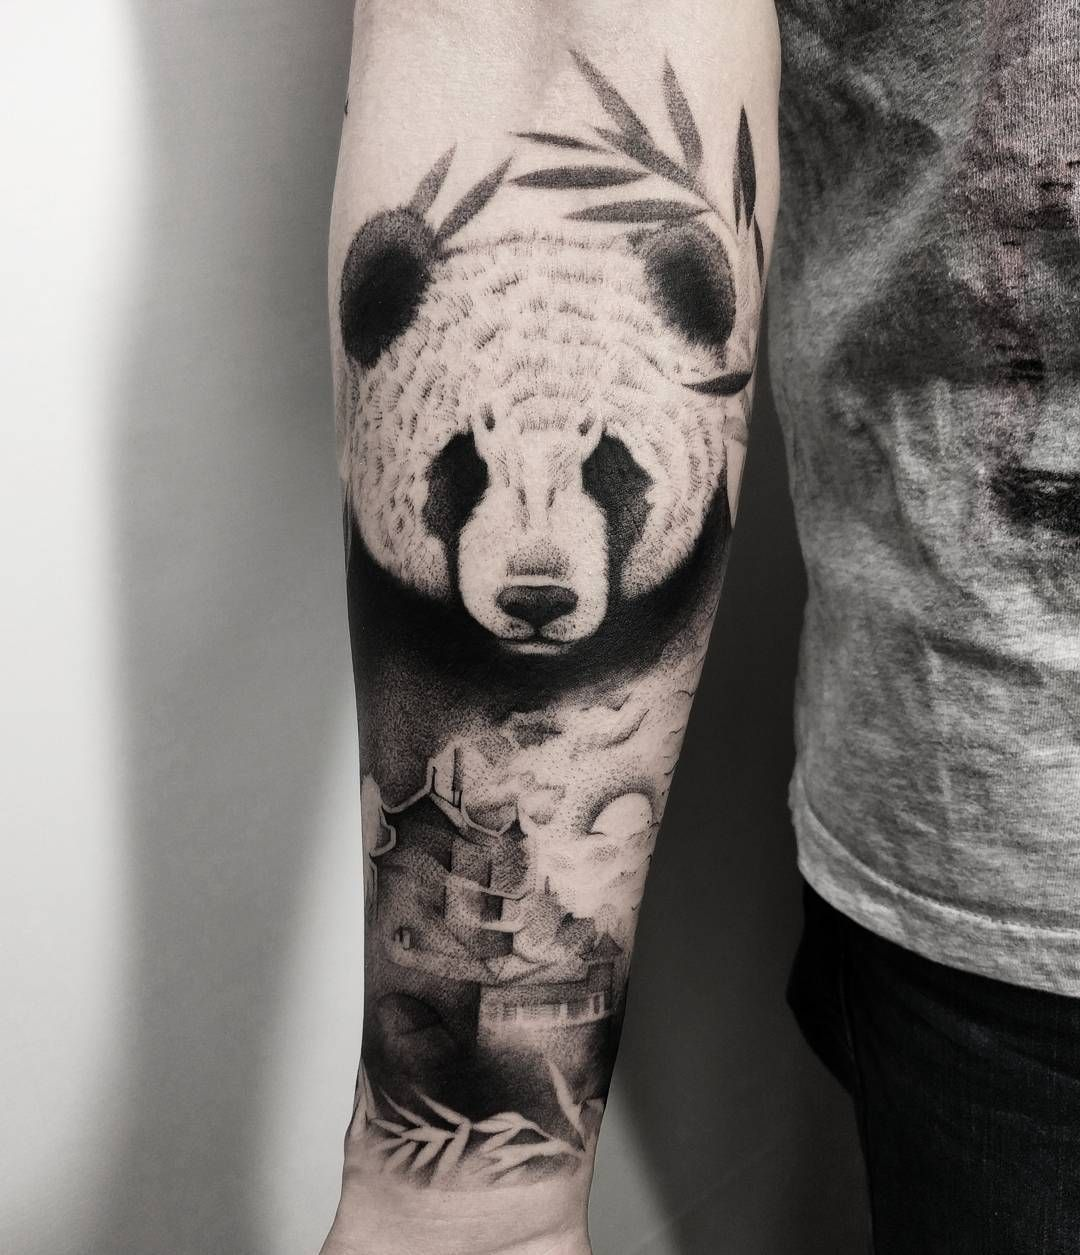 0bc6b21c1 Panda Tattoo Designs 016 Tatto Panda, Panda Bear Tattoos, Tattoo Designs  For Girls,. Read it